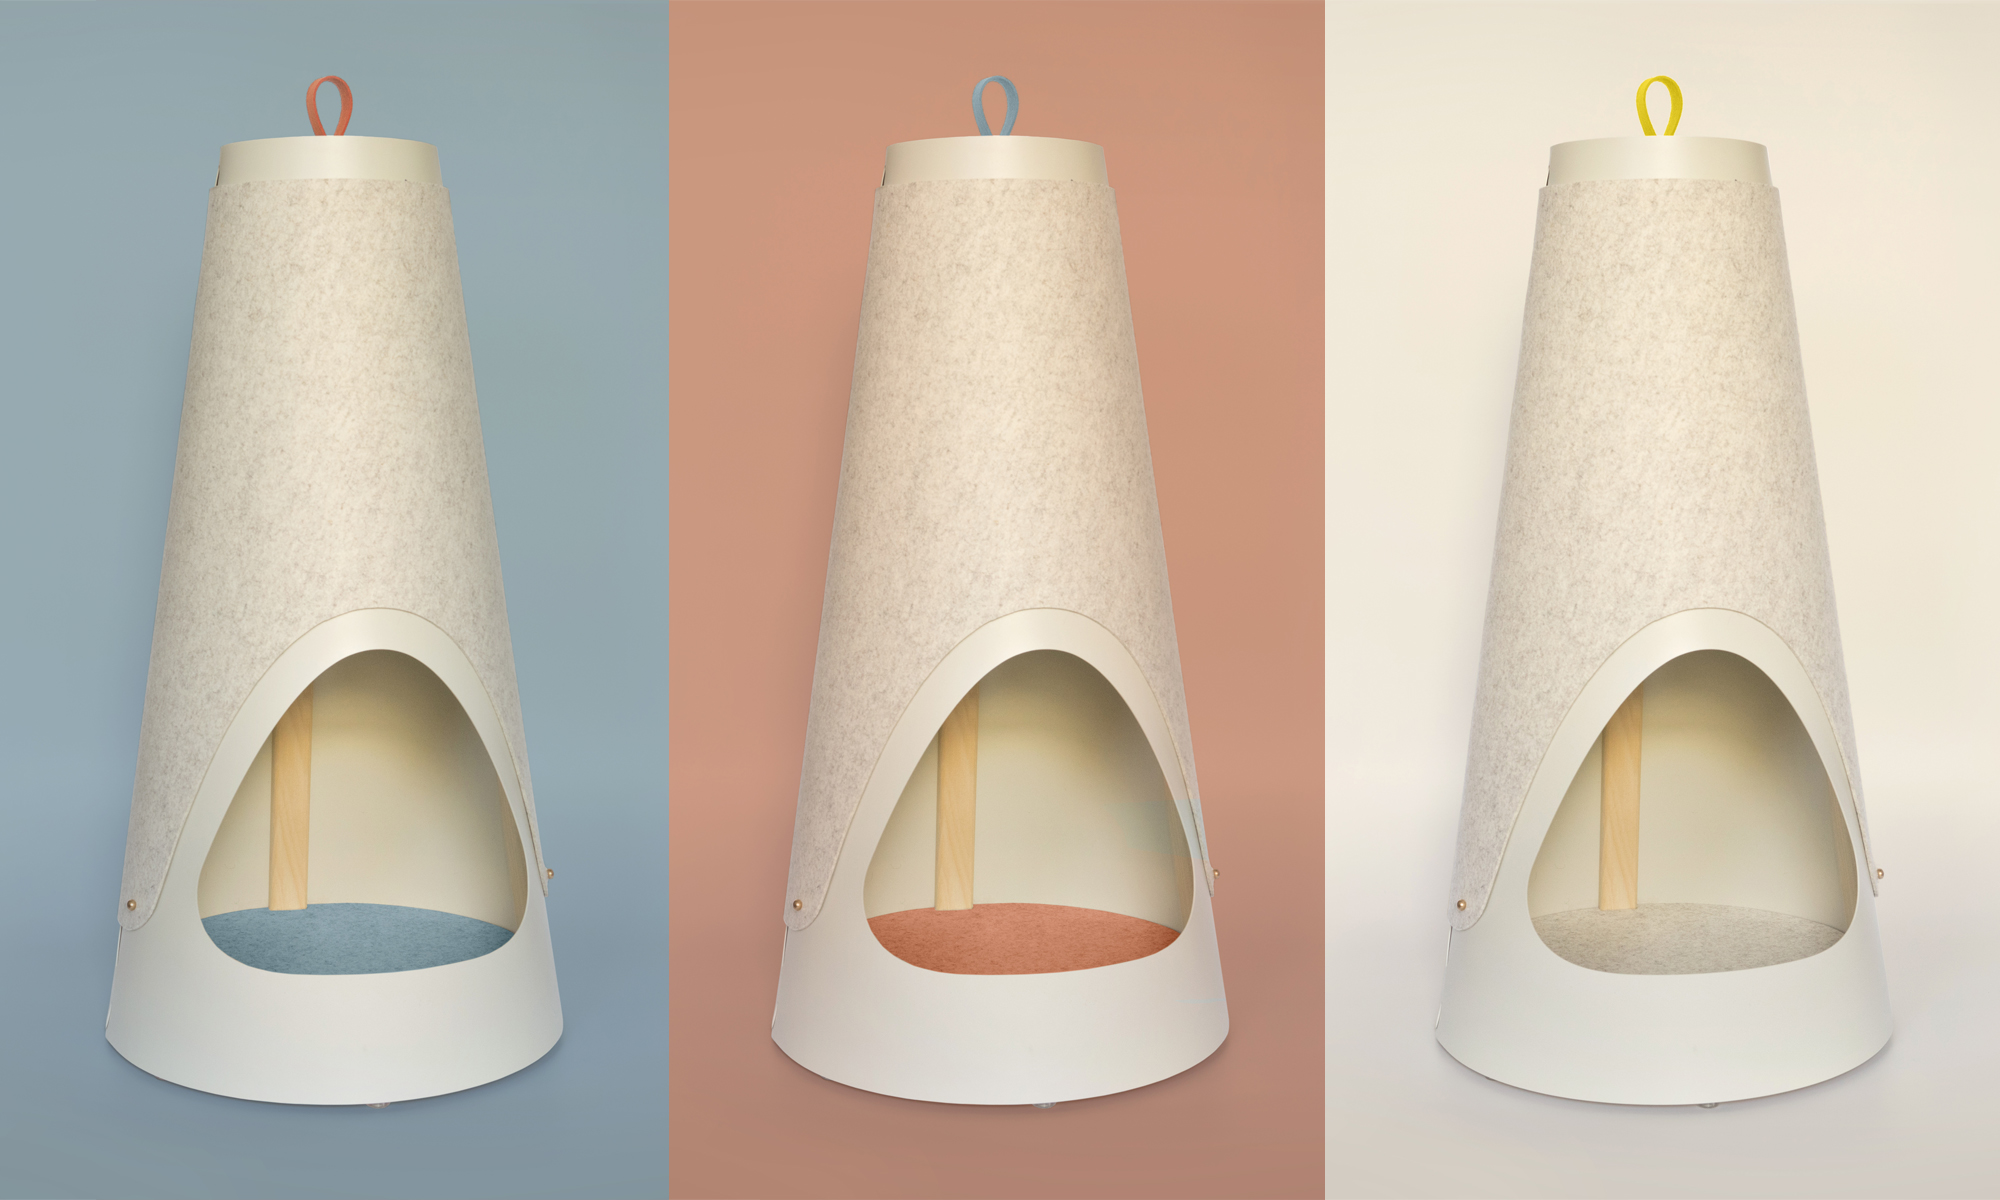 COLORS - The Cone's subtle color scheme comes in three varieties and is meant to fit in any modern home. Every option comes with carry loops in two colors, giving you a choice of a matching or contrasting look.